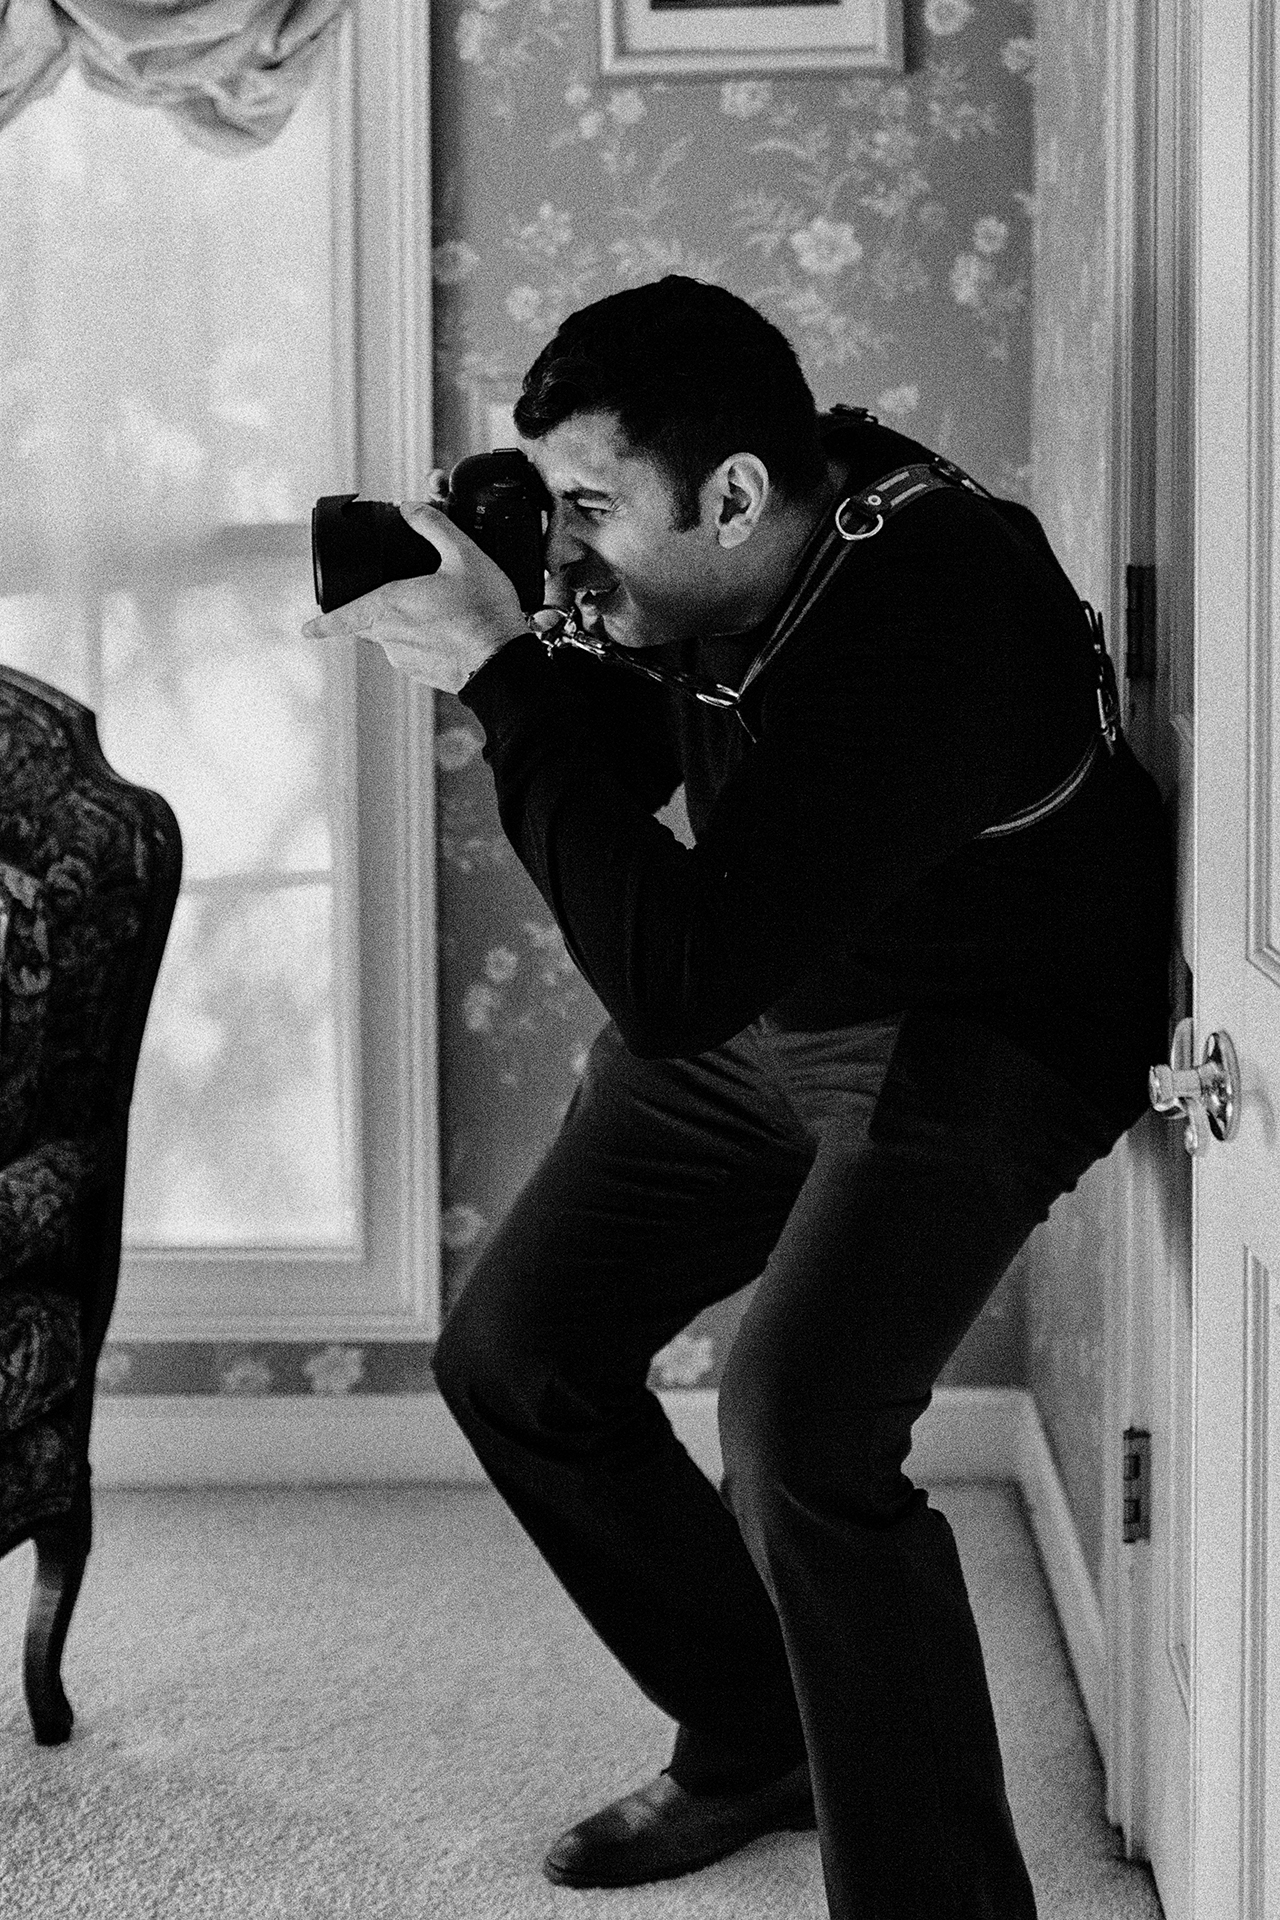 Gagan Dhiman, a CA wedding photographer working the angles at an event